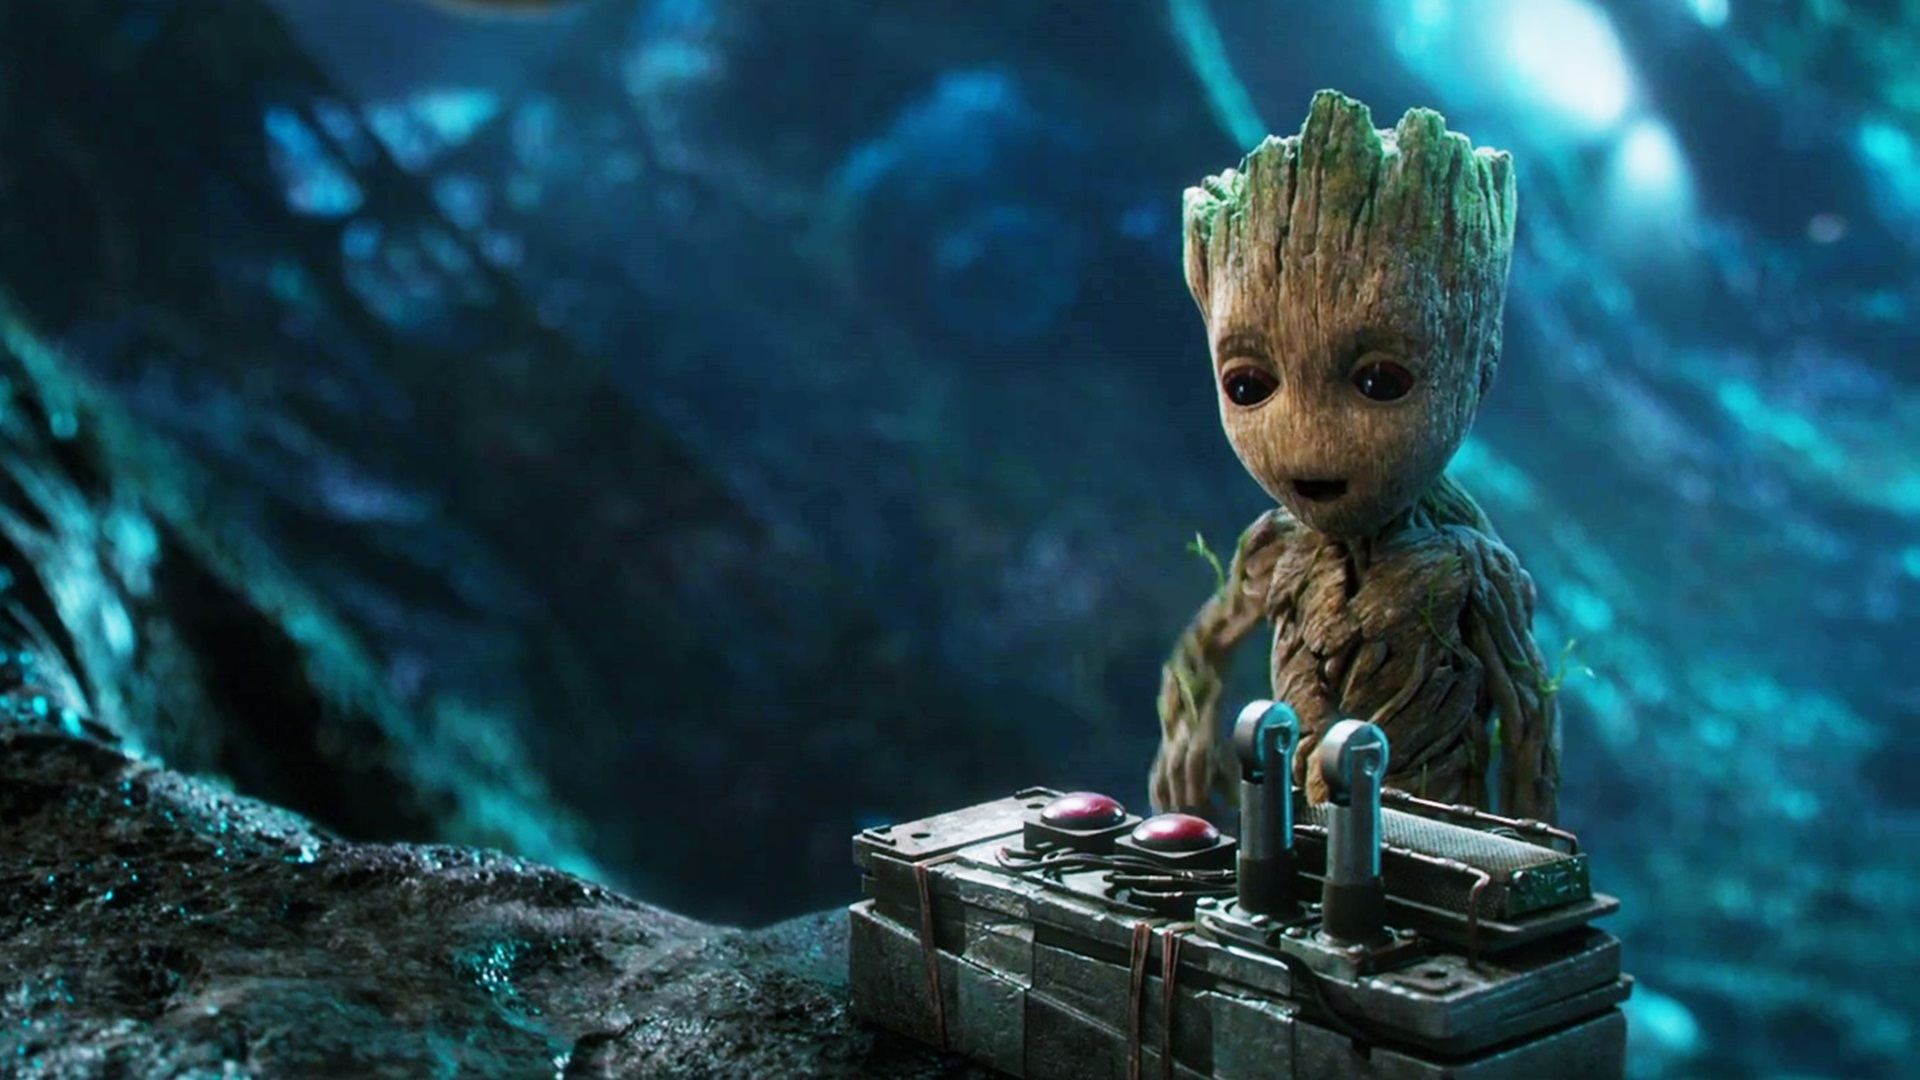 Guardians Of The Galaxy Wallpaper Download 1920x1080